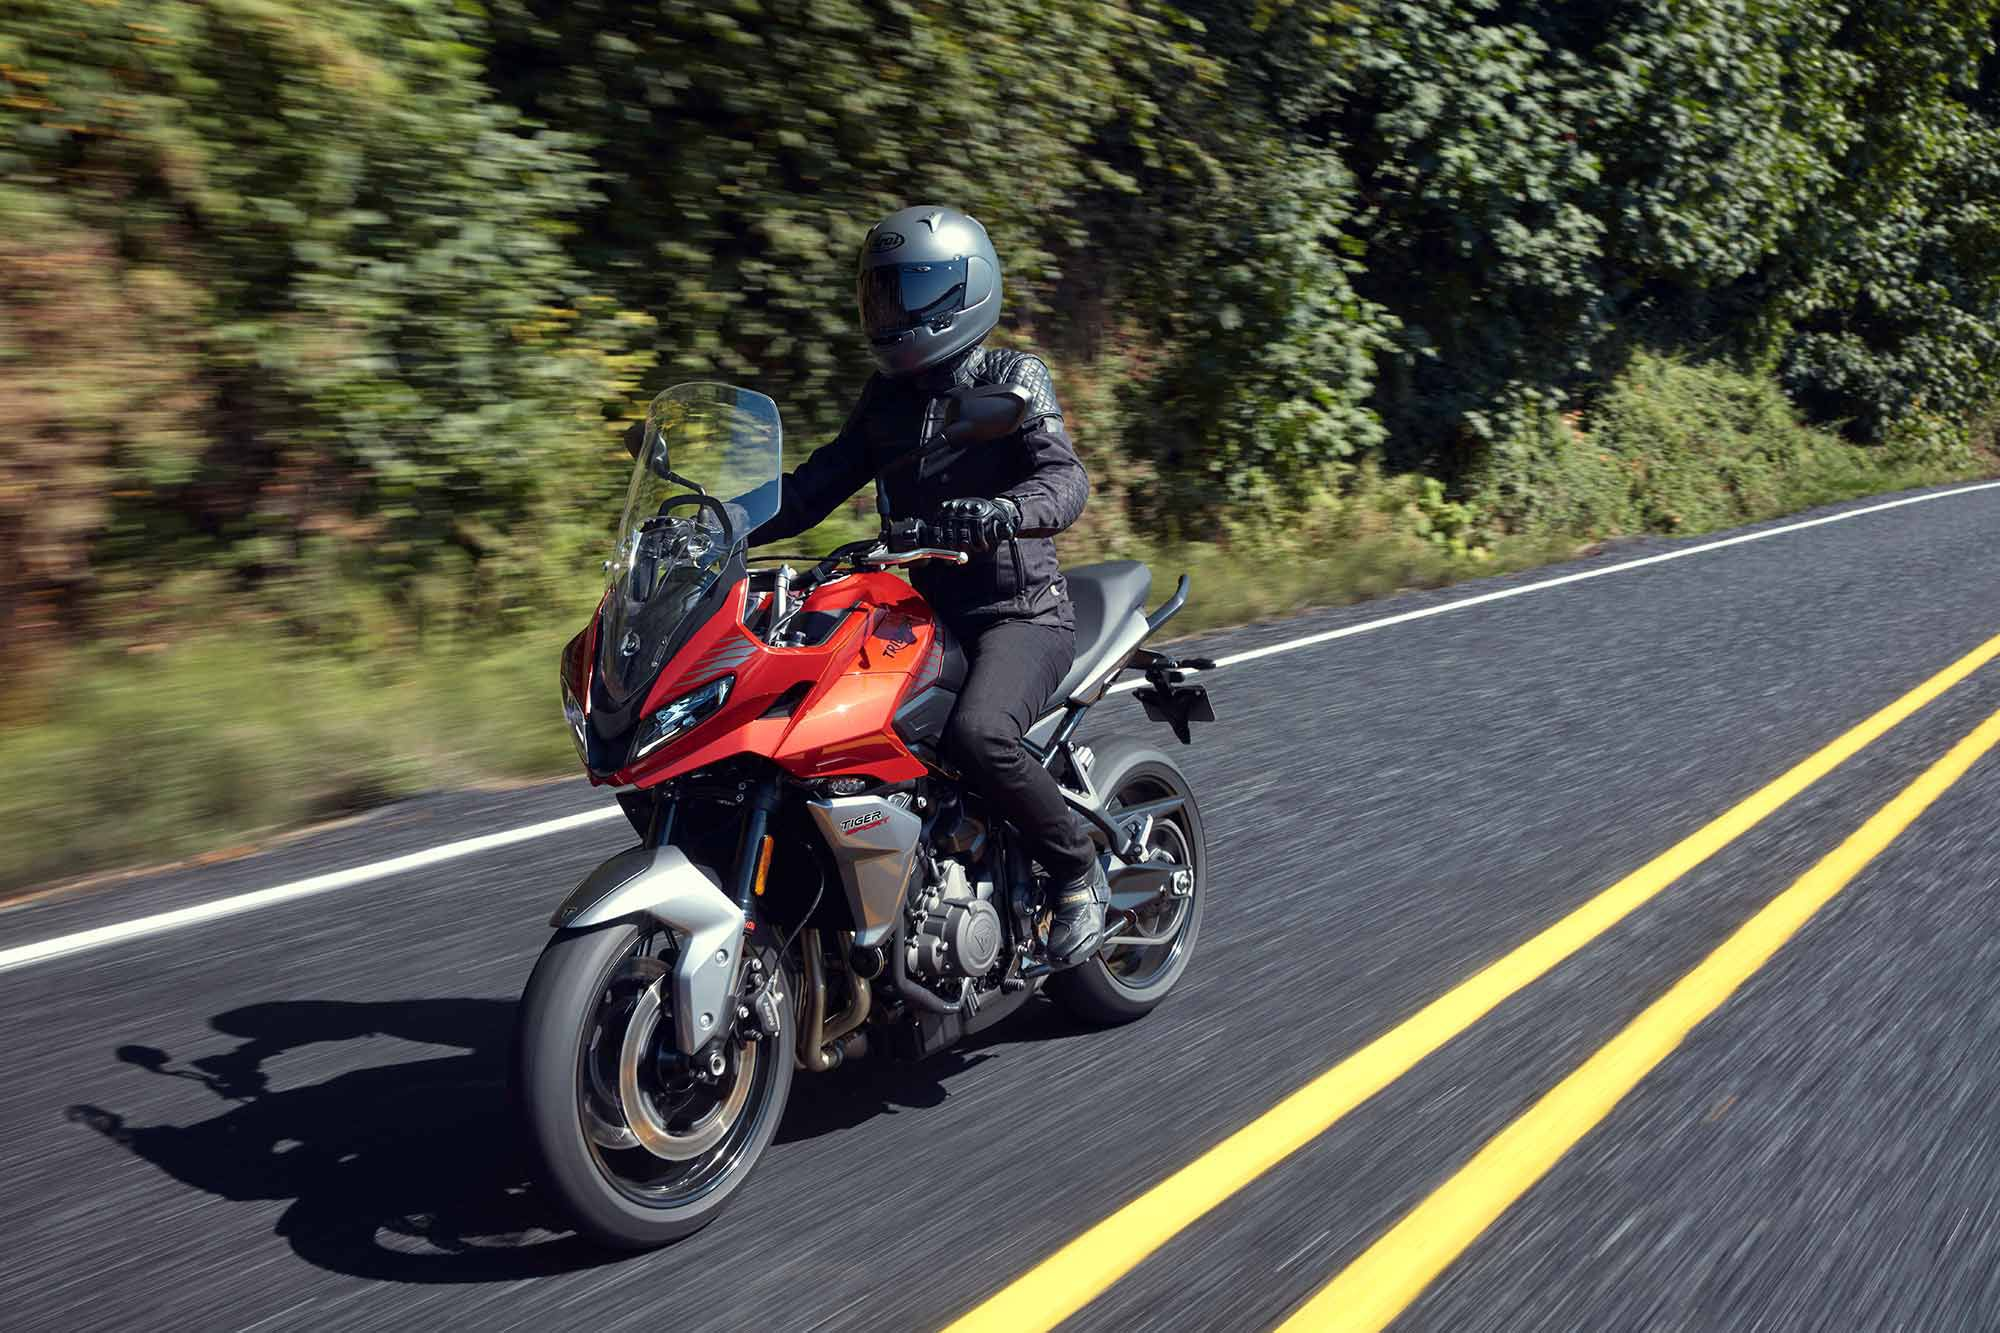 Power delivery is managed by Triumph's engine management system with ride-by-wire throttle control providing a precise and responsive feel.